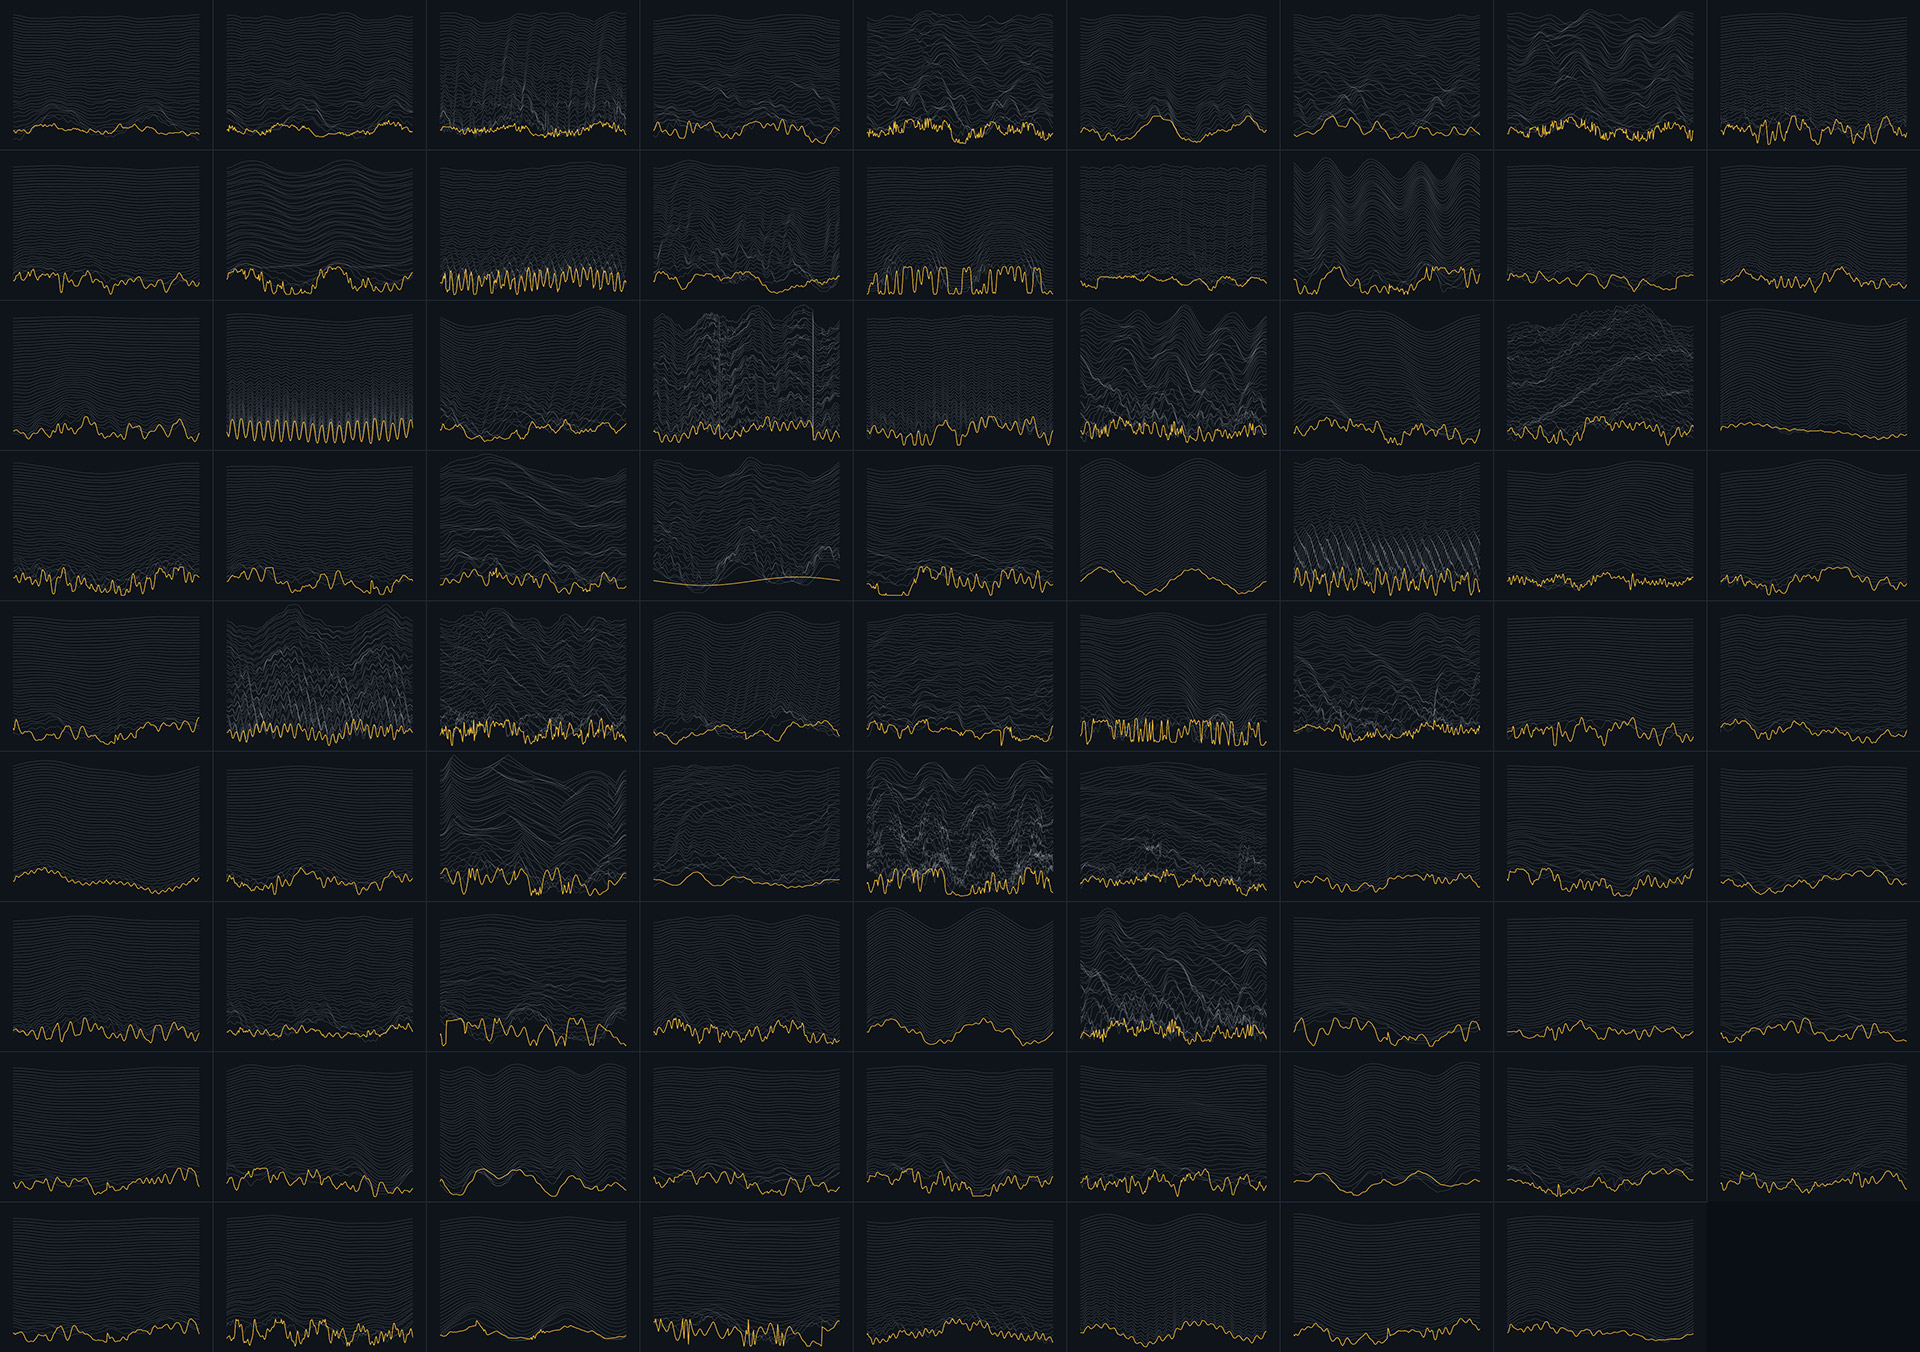 collage of custom made wavetables for ableton wavetable presets and screenshots of ableton wavetable synth's GUI